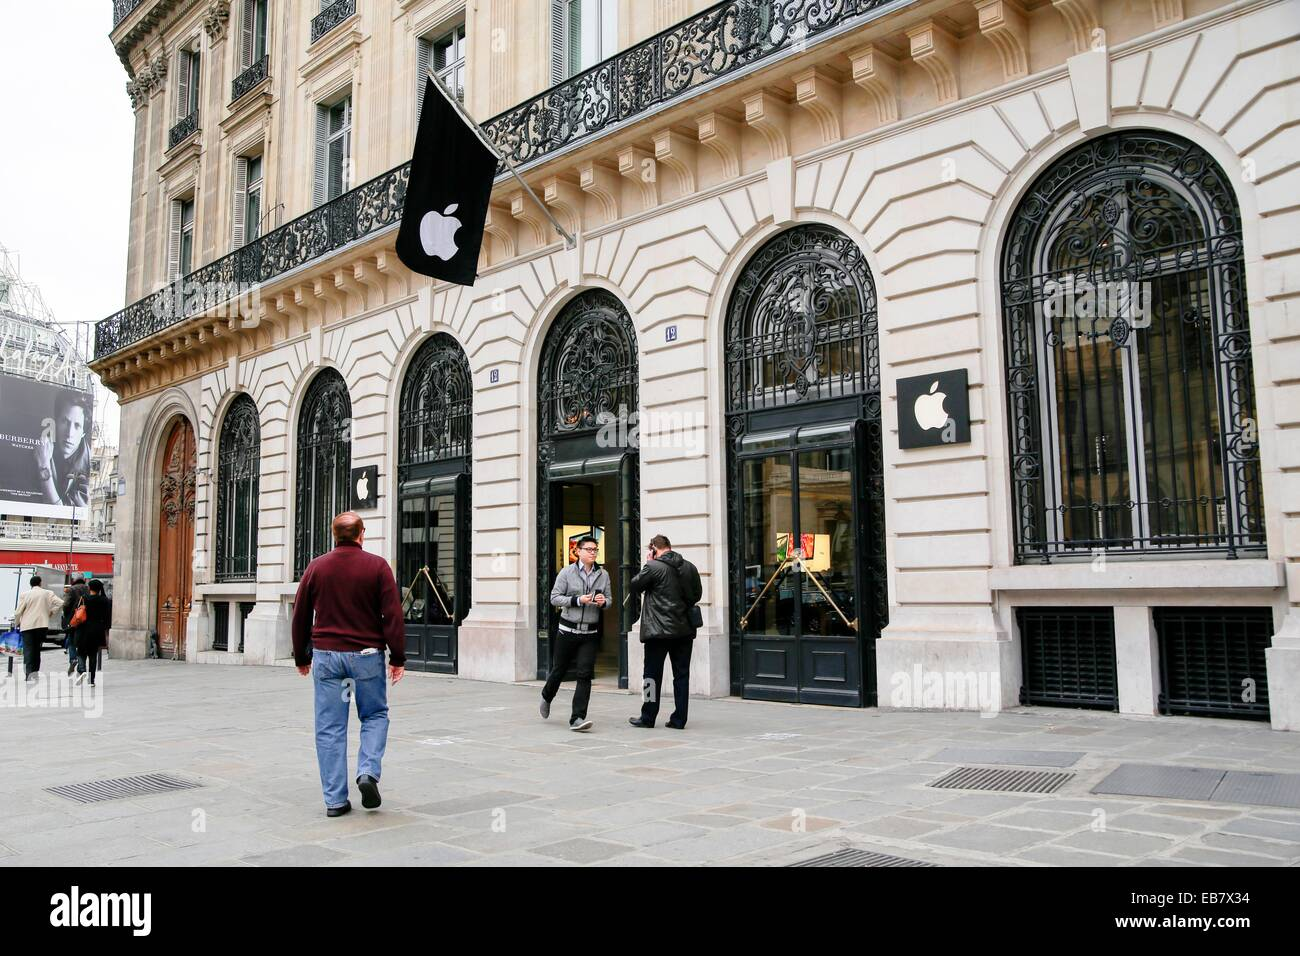 people passing the apple store in the opera area paris france stock photo 75776824 alamy. Black Bedroom Furniture Sets. Home Design Ideas